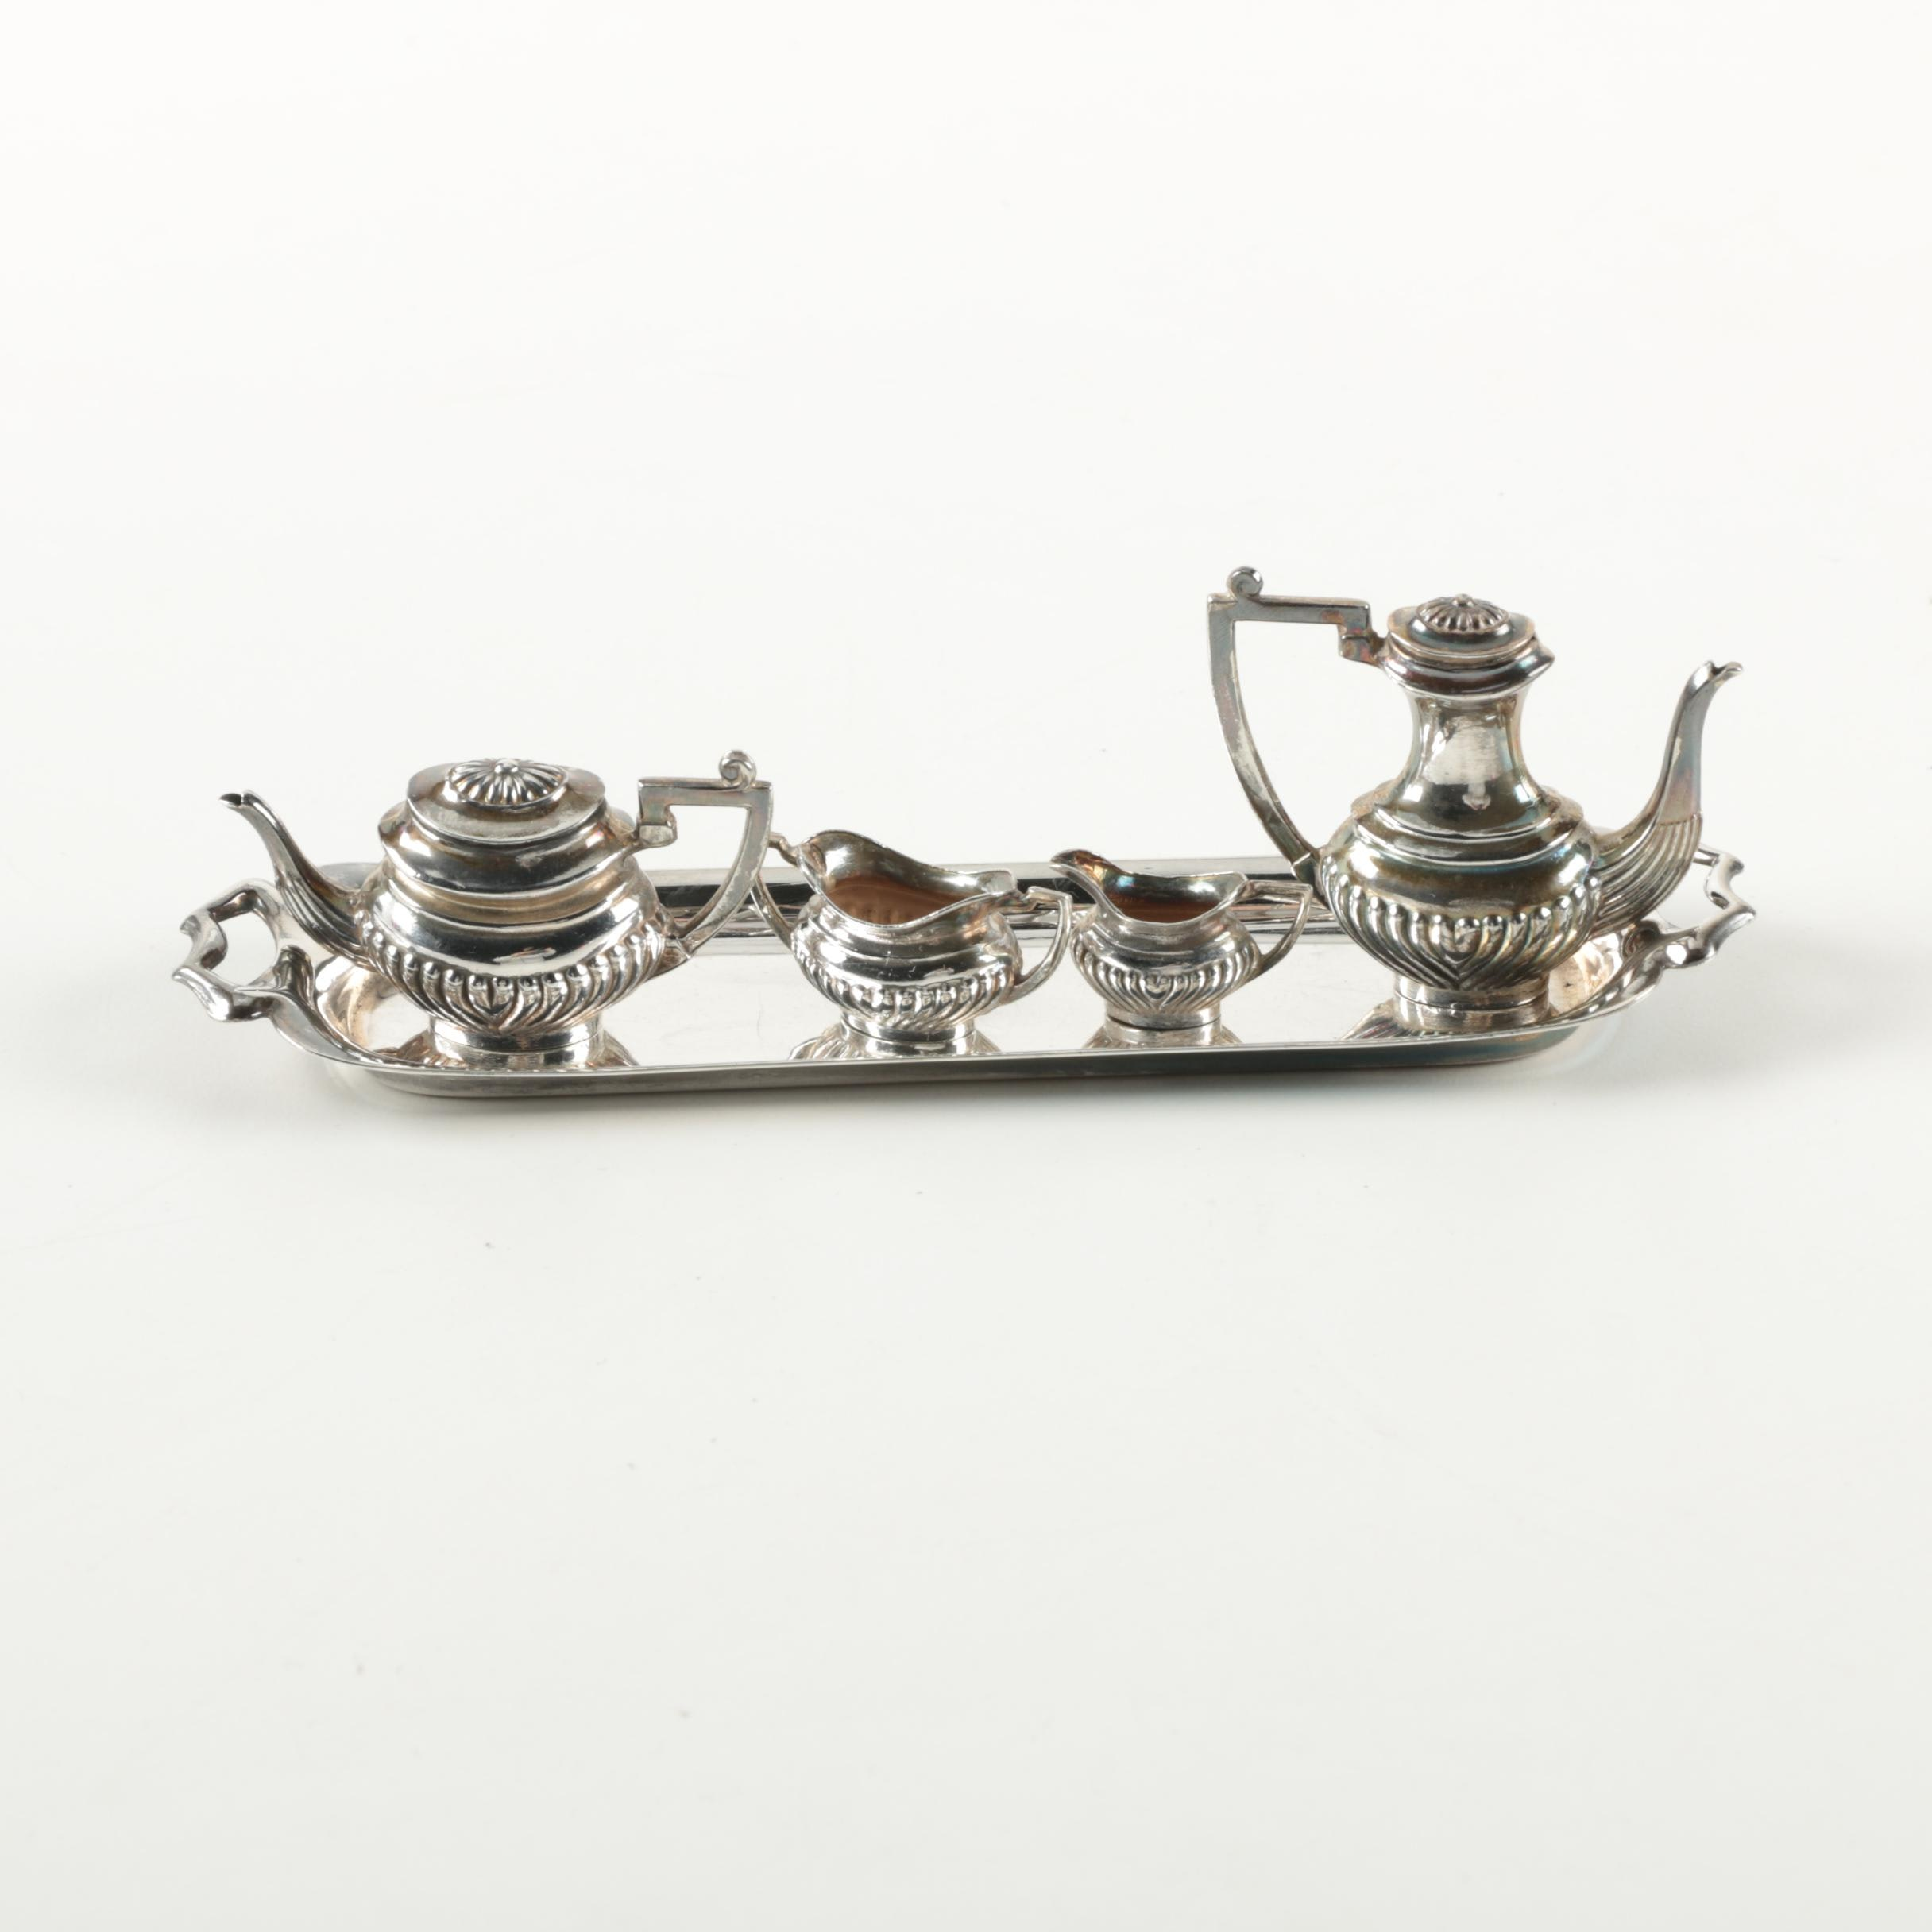 1968 A. Marston & Co. British Miniature Sterling Silver Coffee and Tea Service